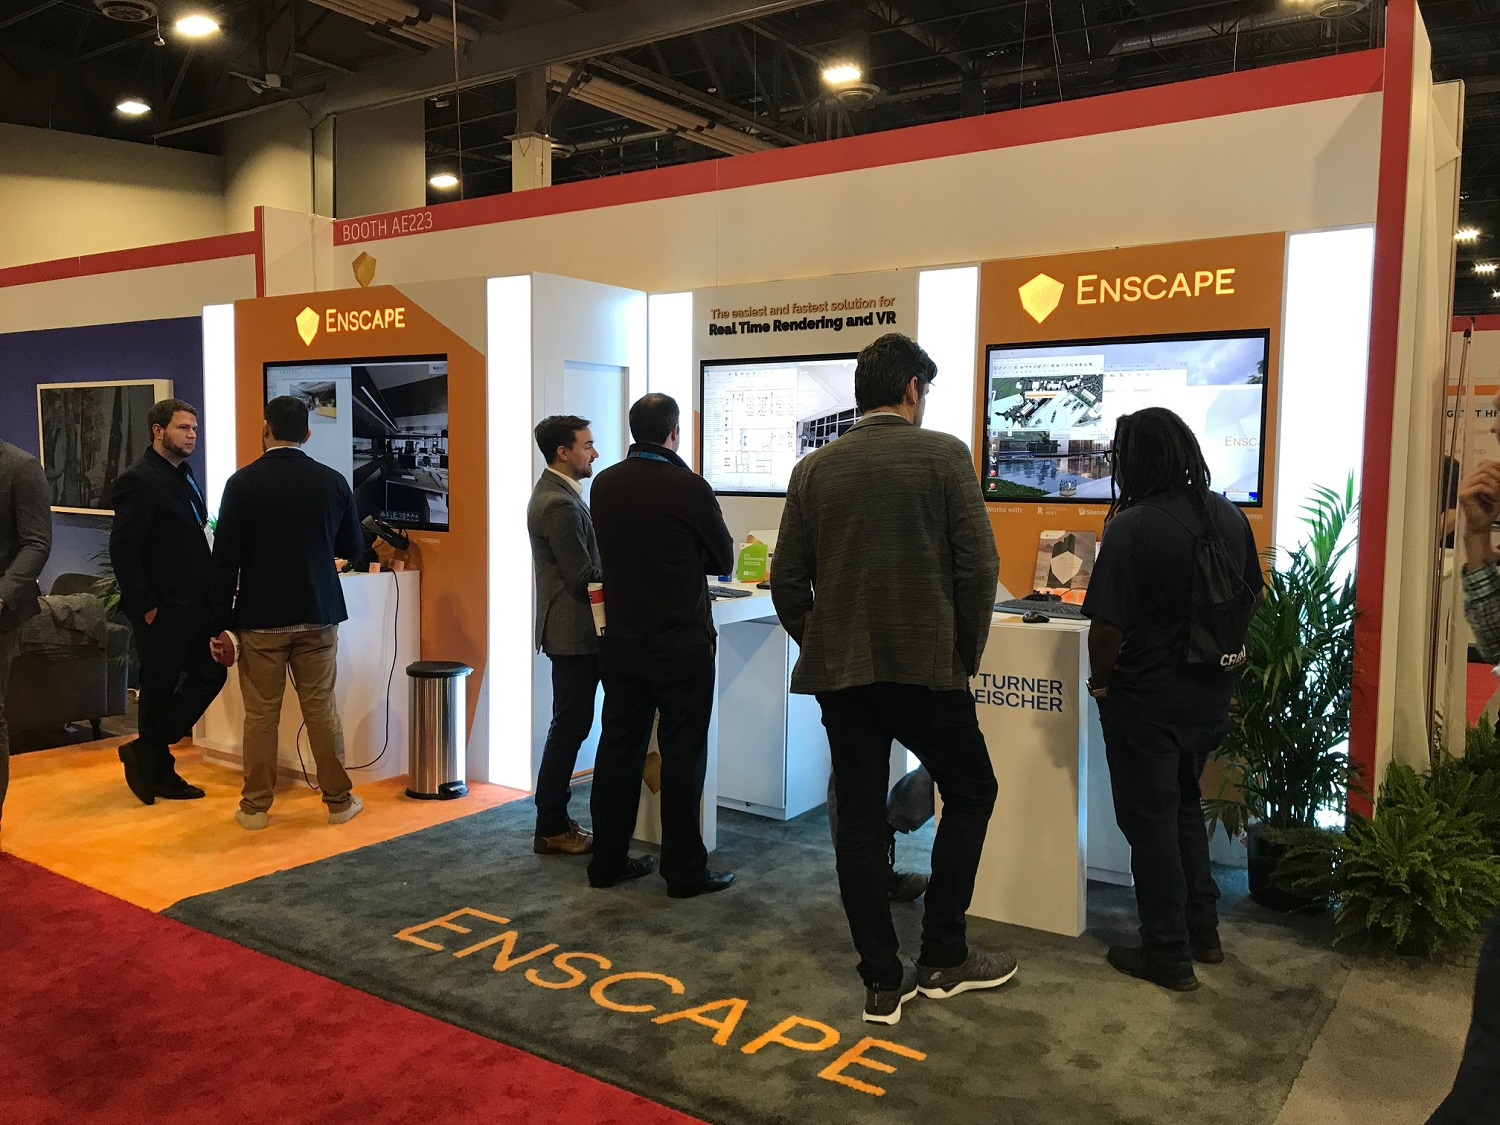 The Enscape Booth at Autodesk University 2019